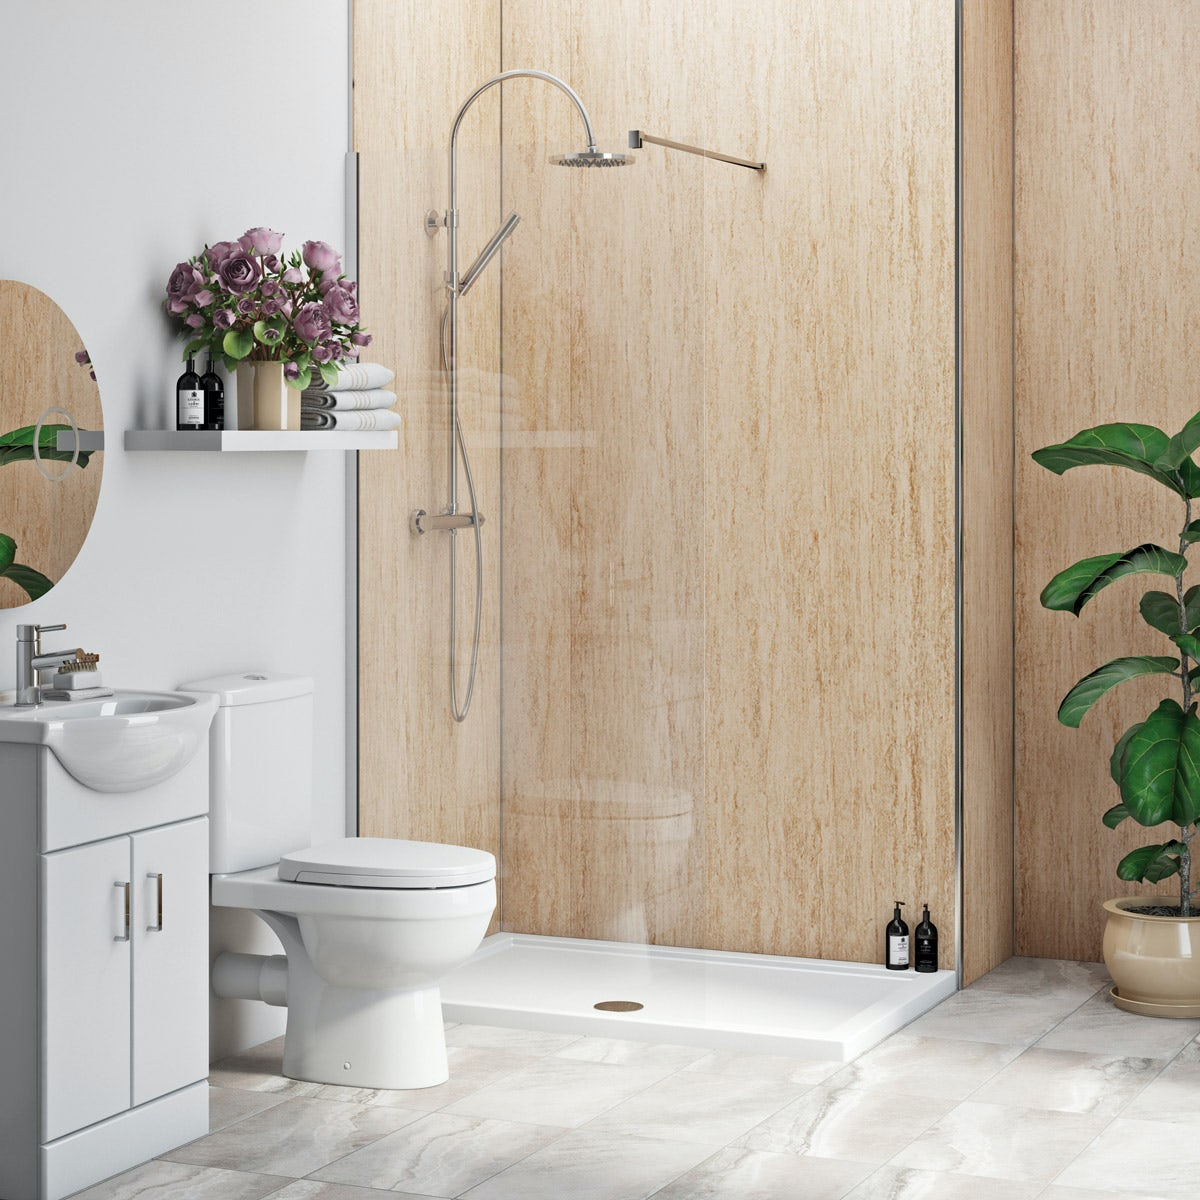 Multipanel Economy Aruban Sand matt shower wall 2 panel pack